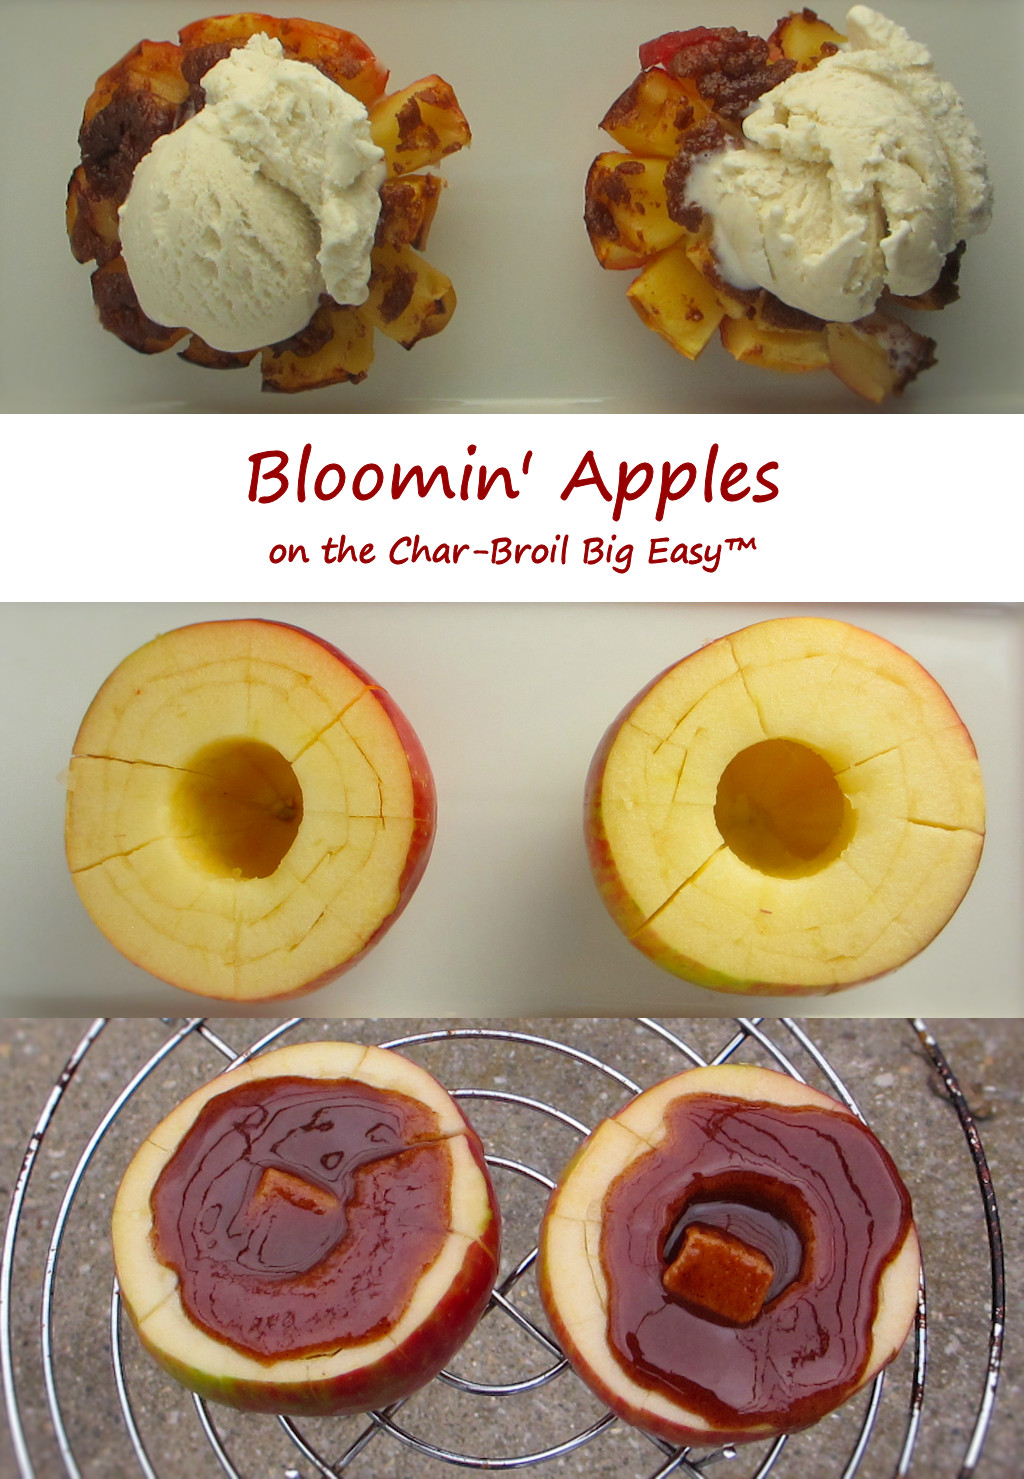 Bloomin' Apples on the Char-Broil Big Easy